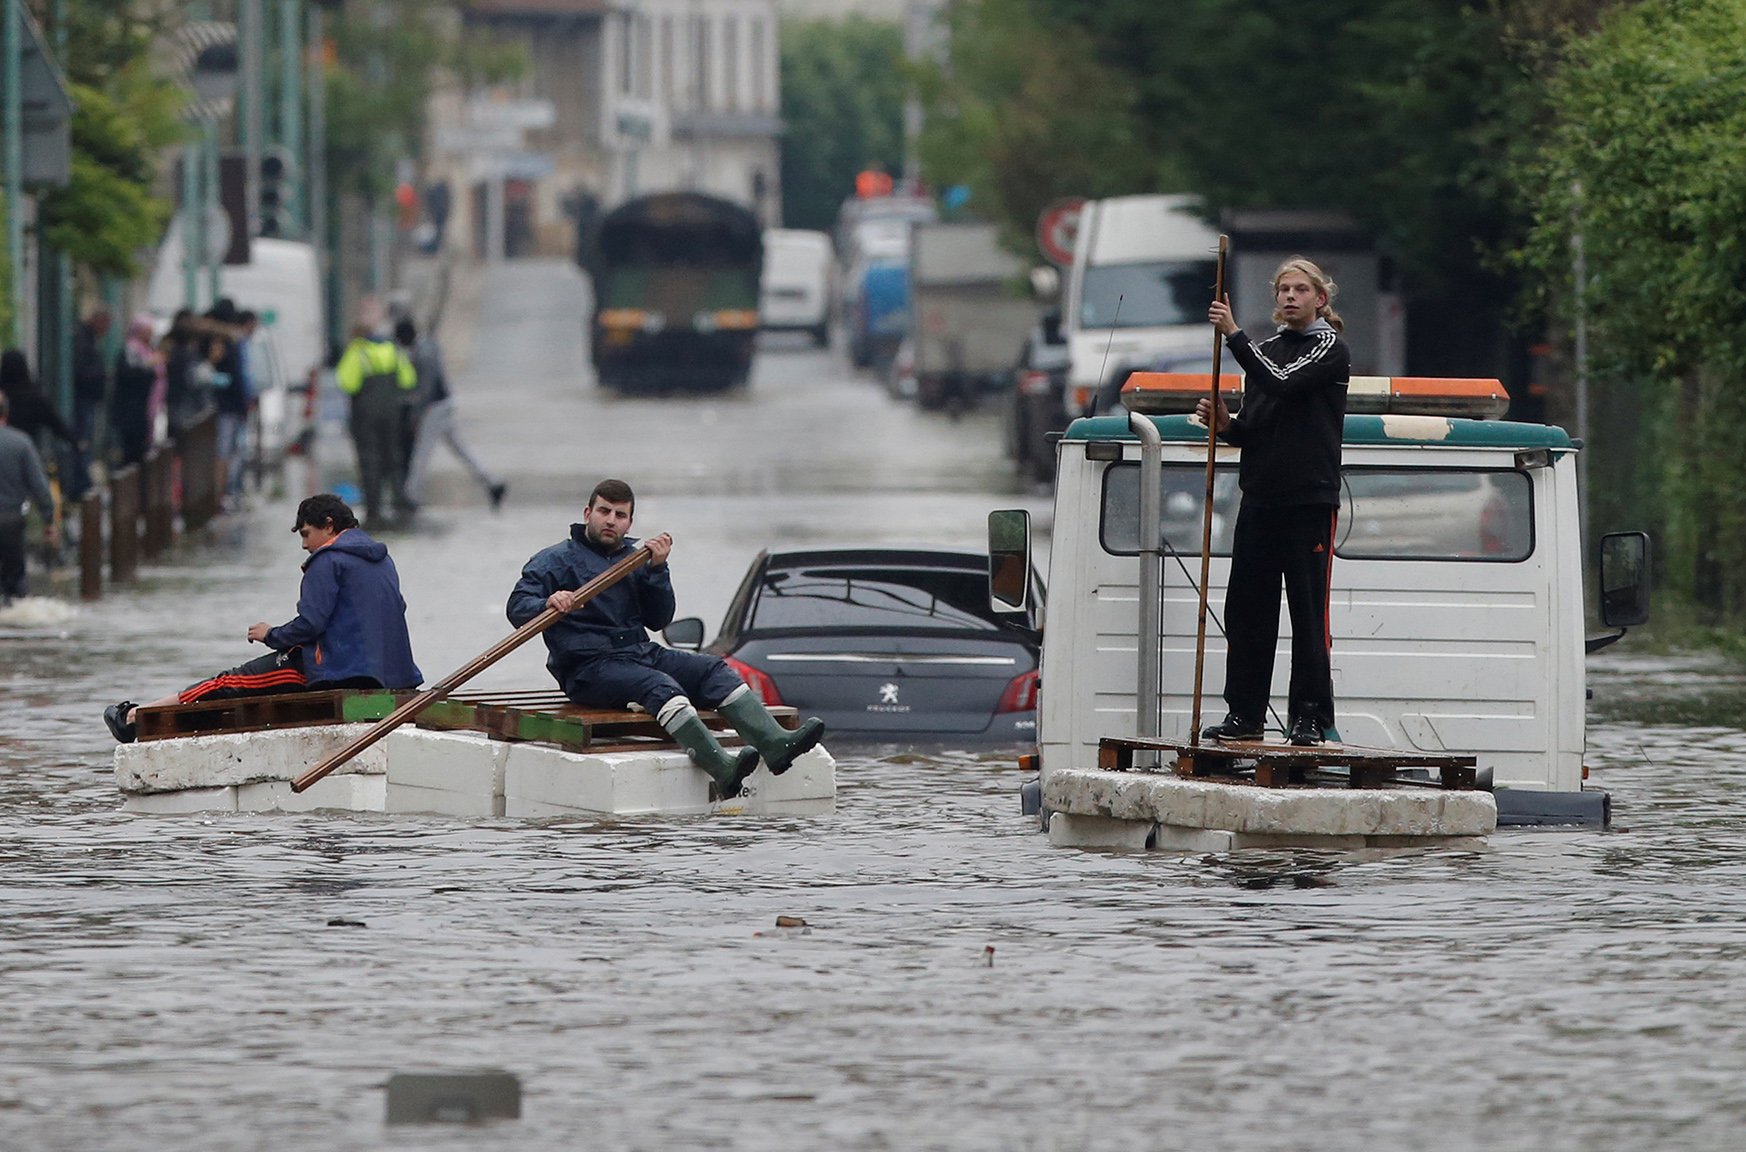 Residents who refused to be evacuated sit on makeshift boats during evacuation operations of the Villeneuve-Trillage flooded suburb in Villeneuve Saint-Georges